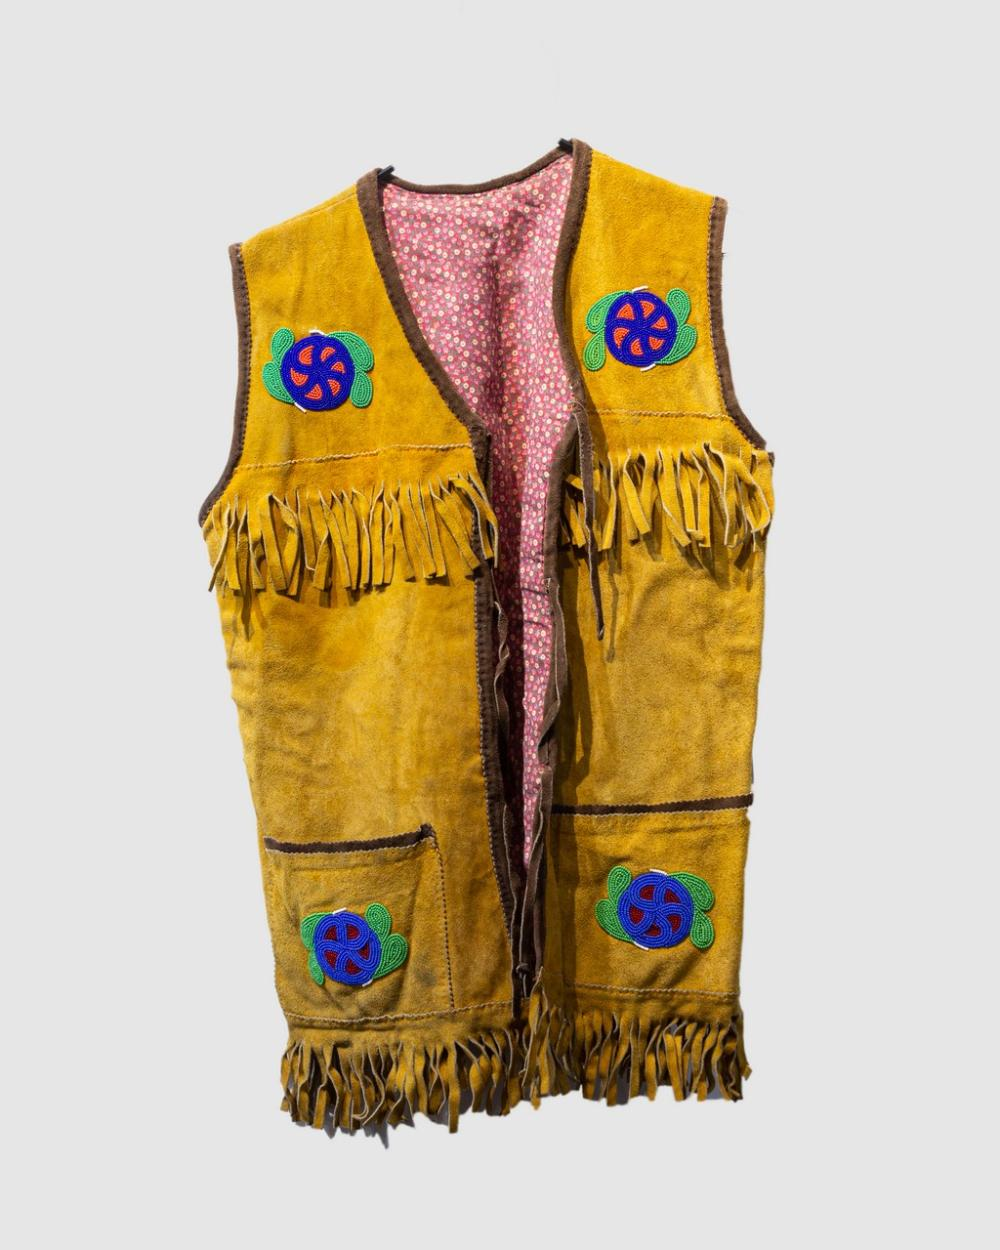 A buckskin vest decorated with bead work.